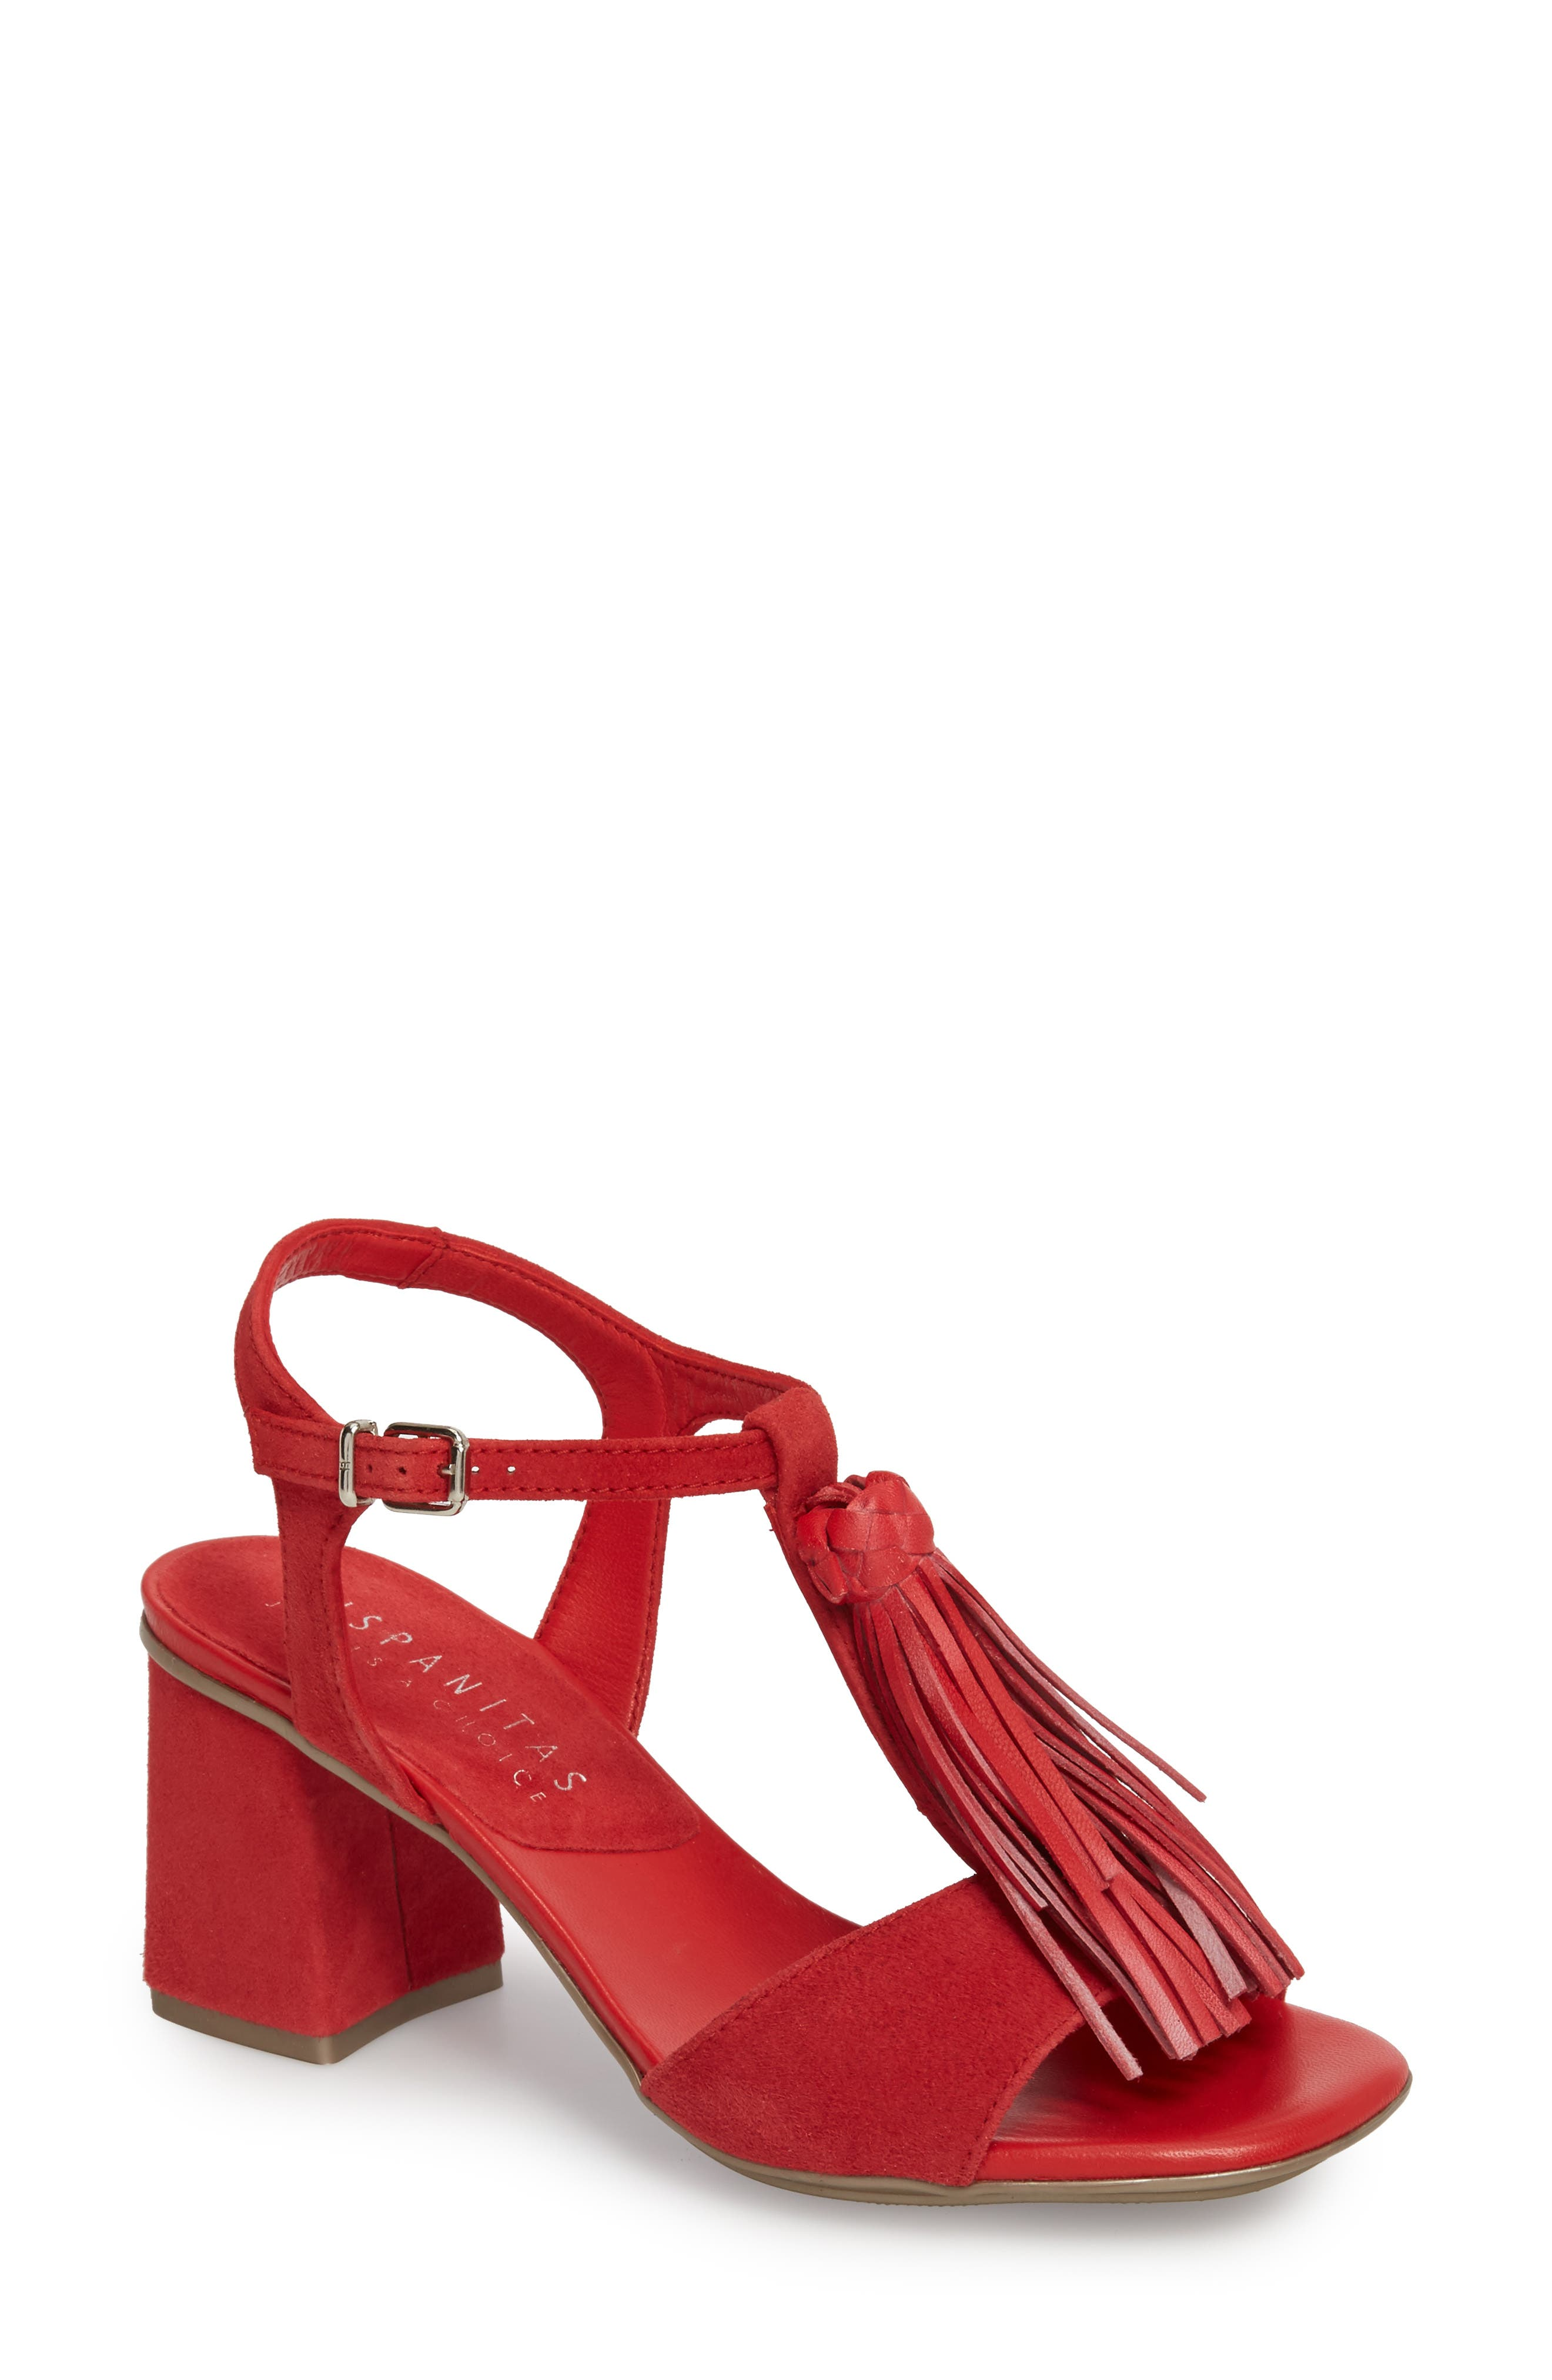 Schulyer T-Strap Sandal,                             Main thumbnail 1, color,                             Rubi Leather